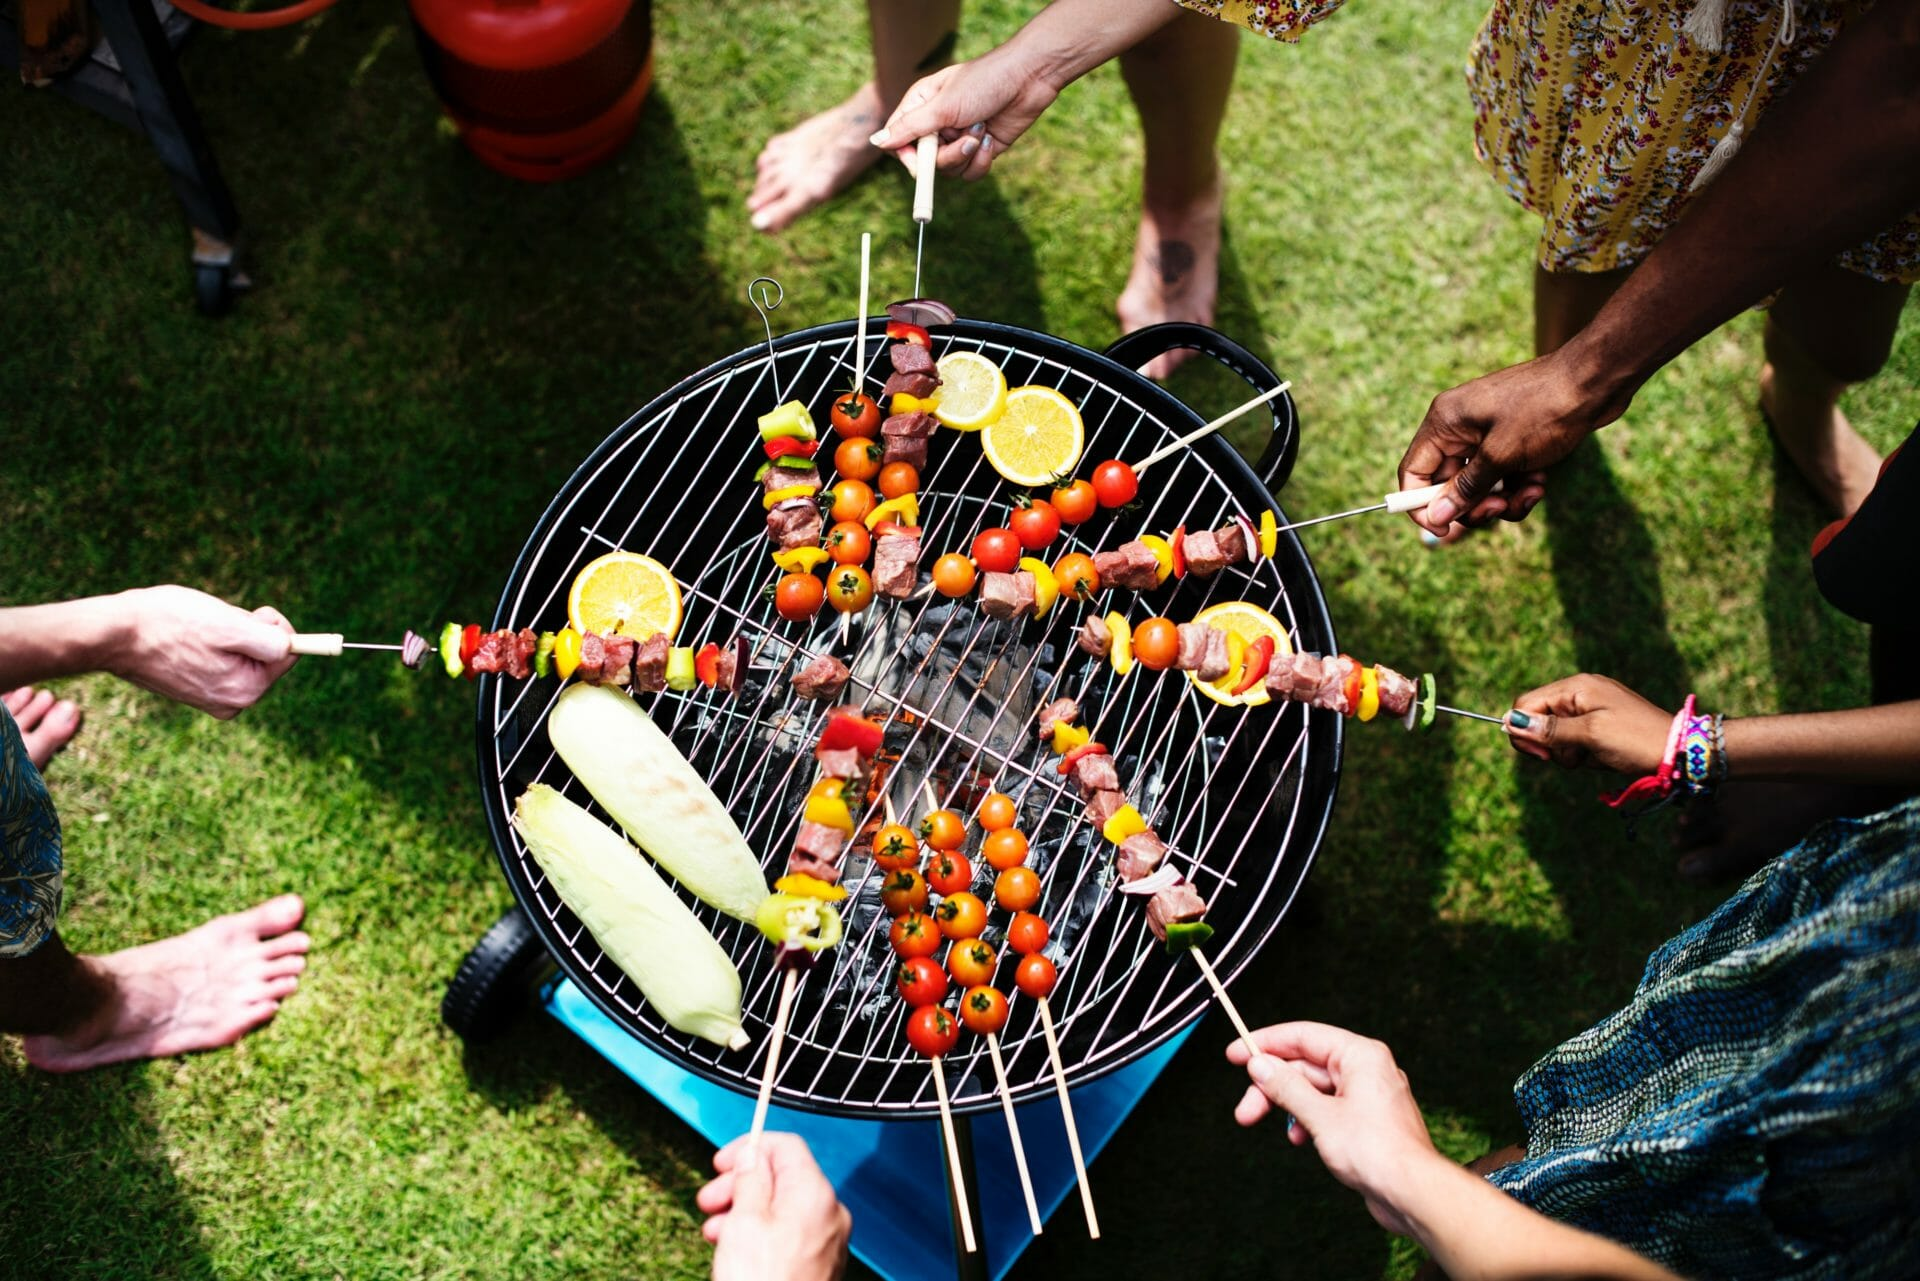 skewers over outside grill at a barbeque